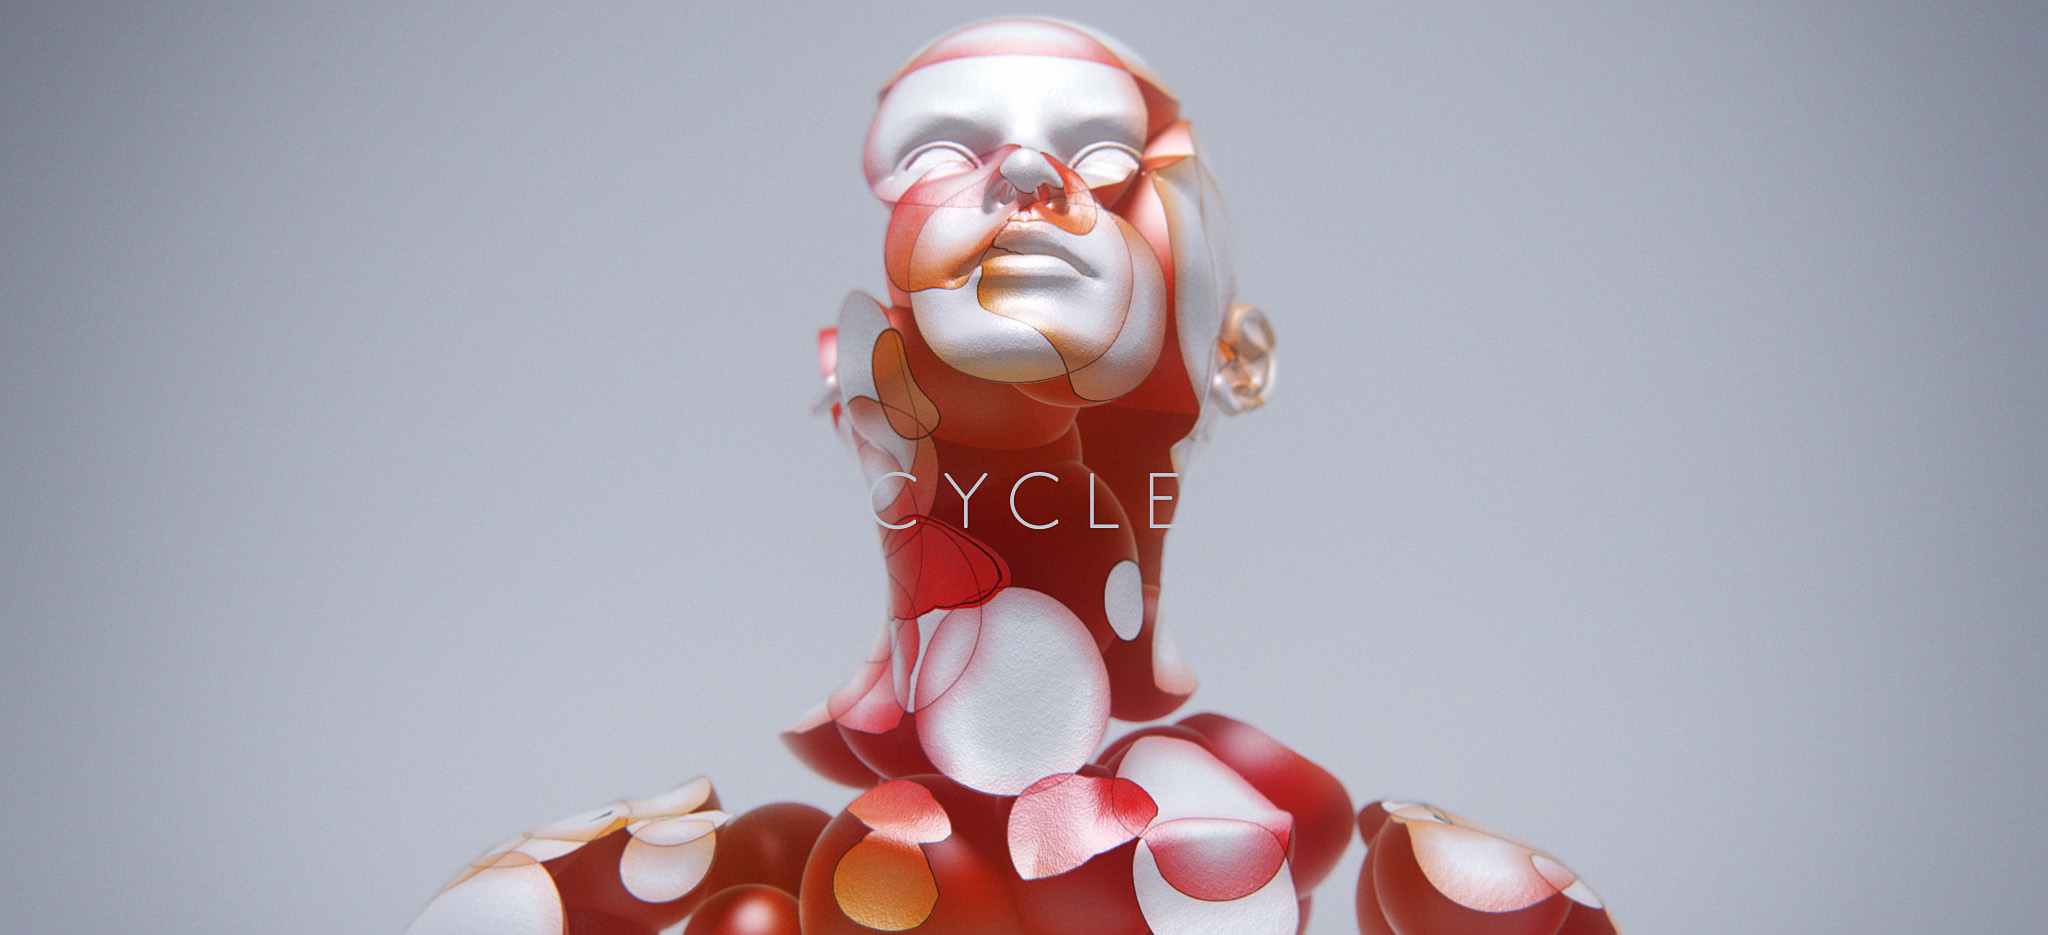 CYCLE_web01